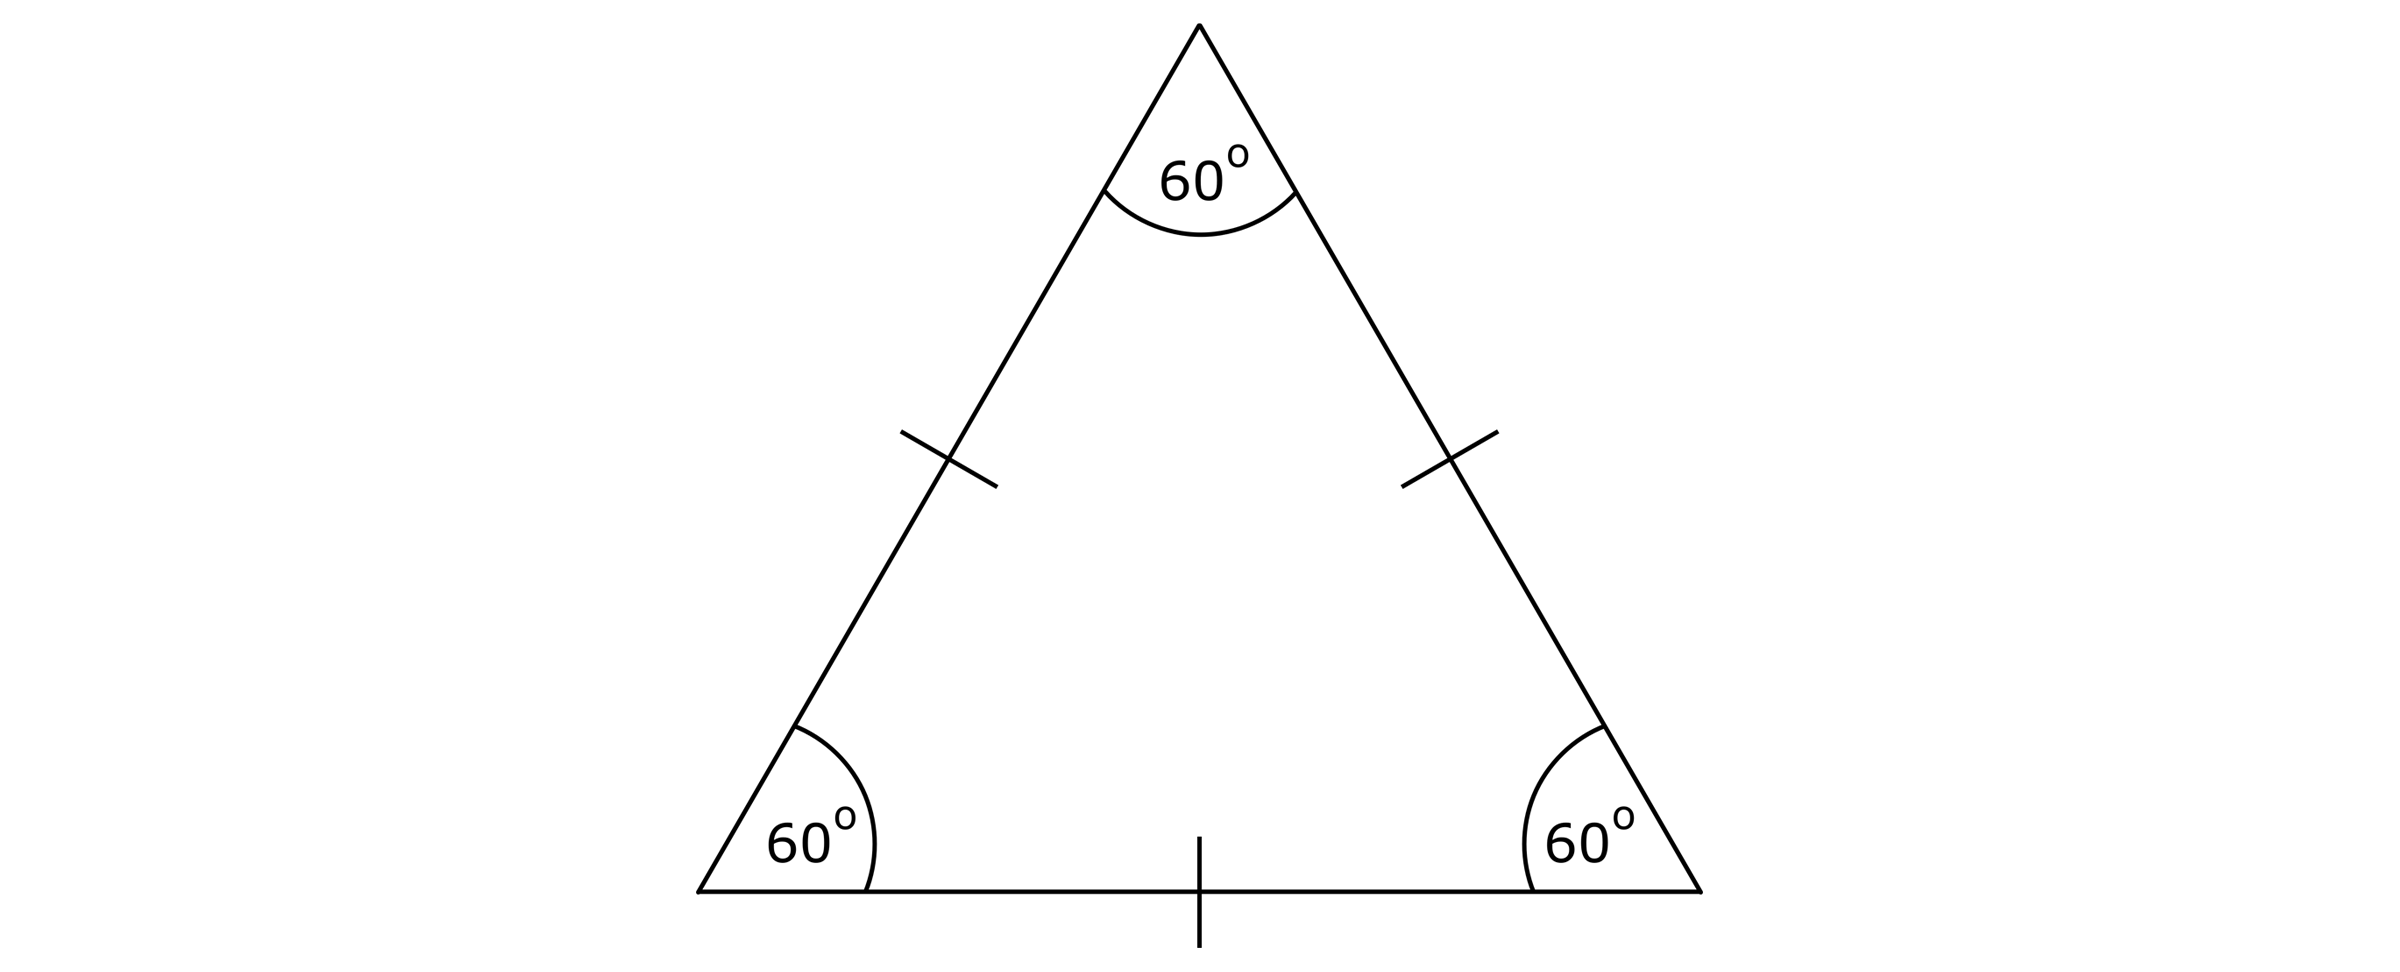 What Are Equilateral Triangles